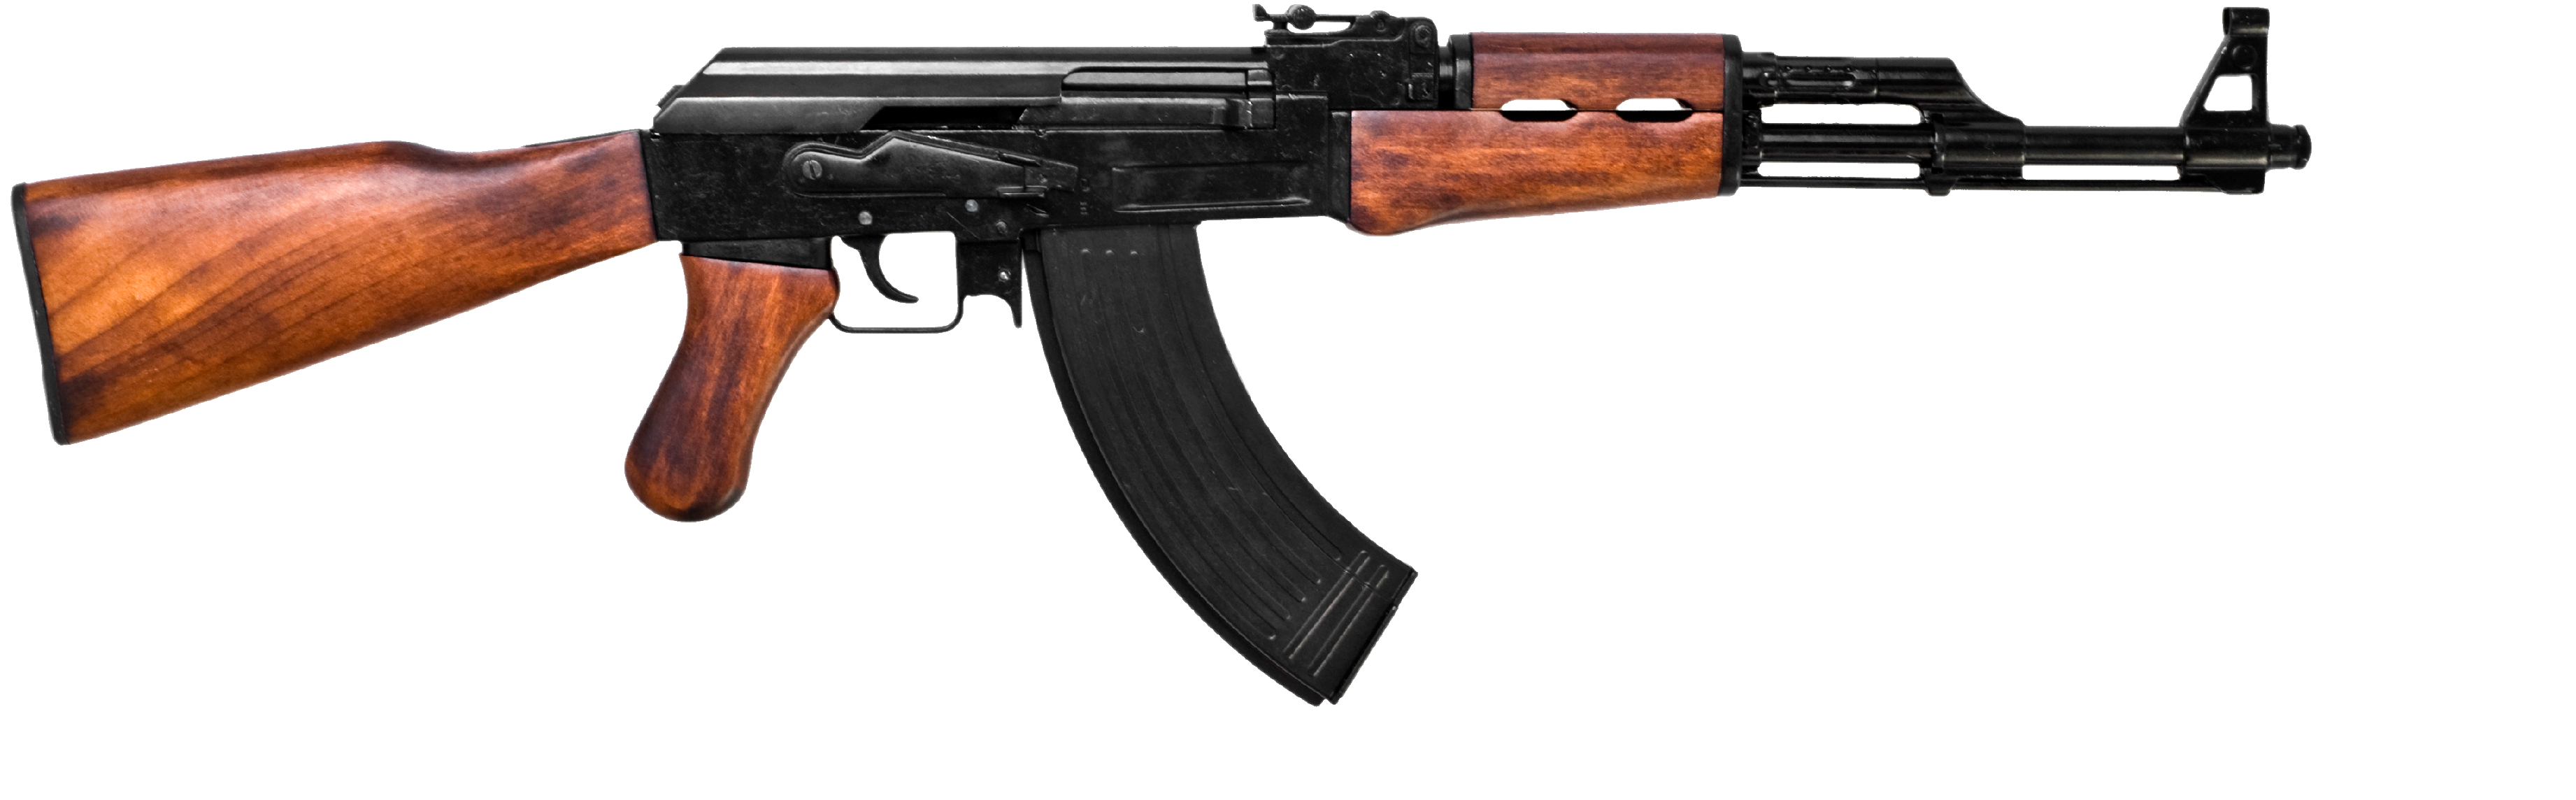 Ak png images free. Transparent rifle clipart black and white stock